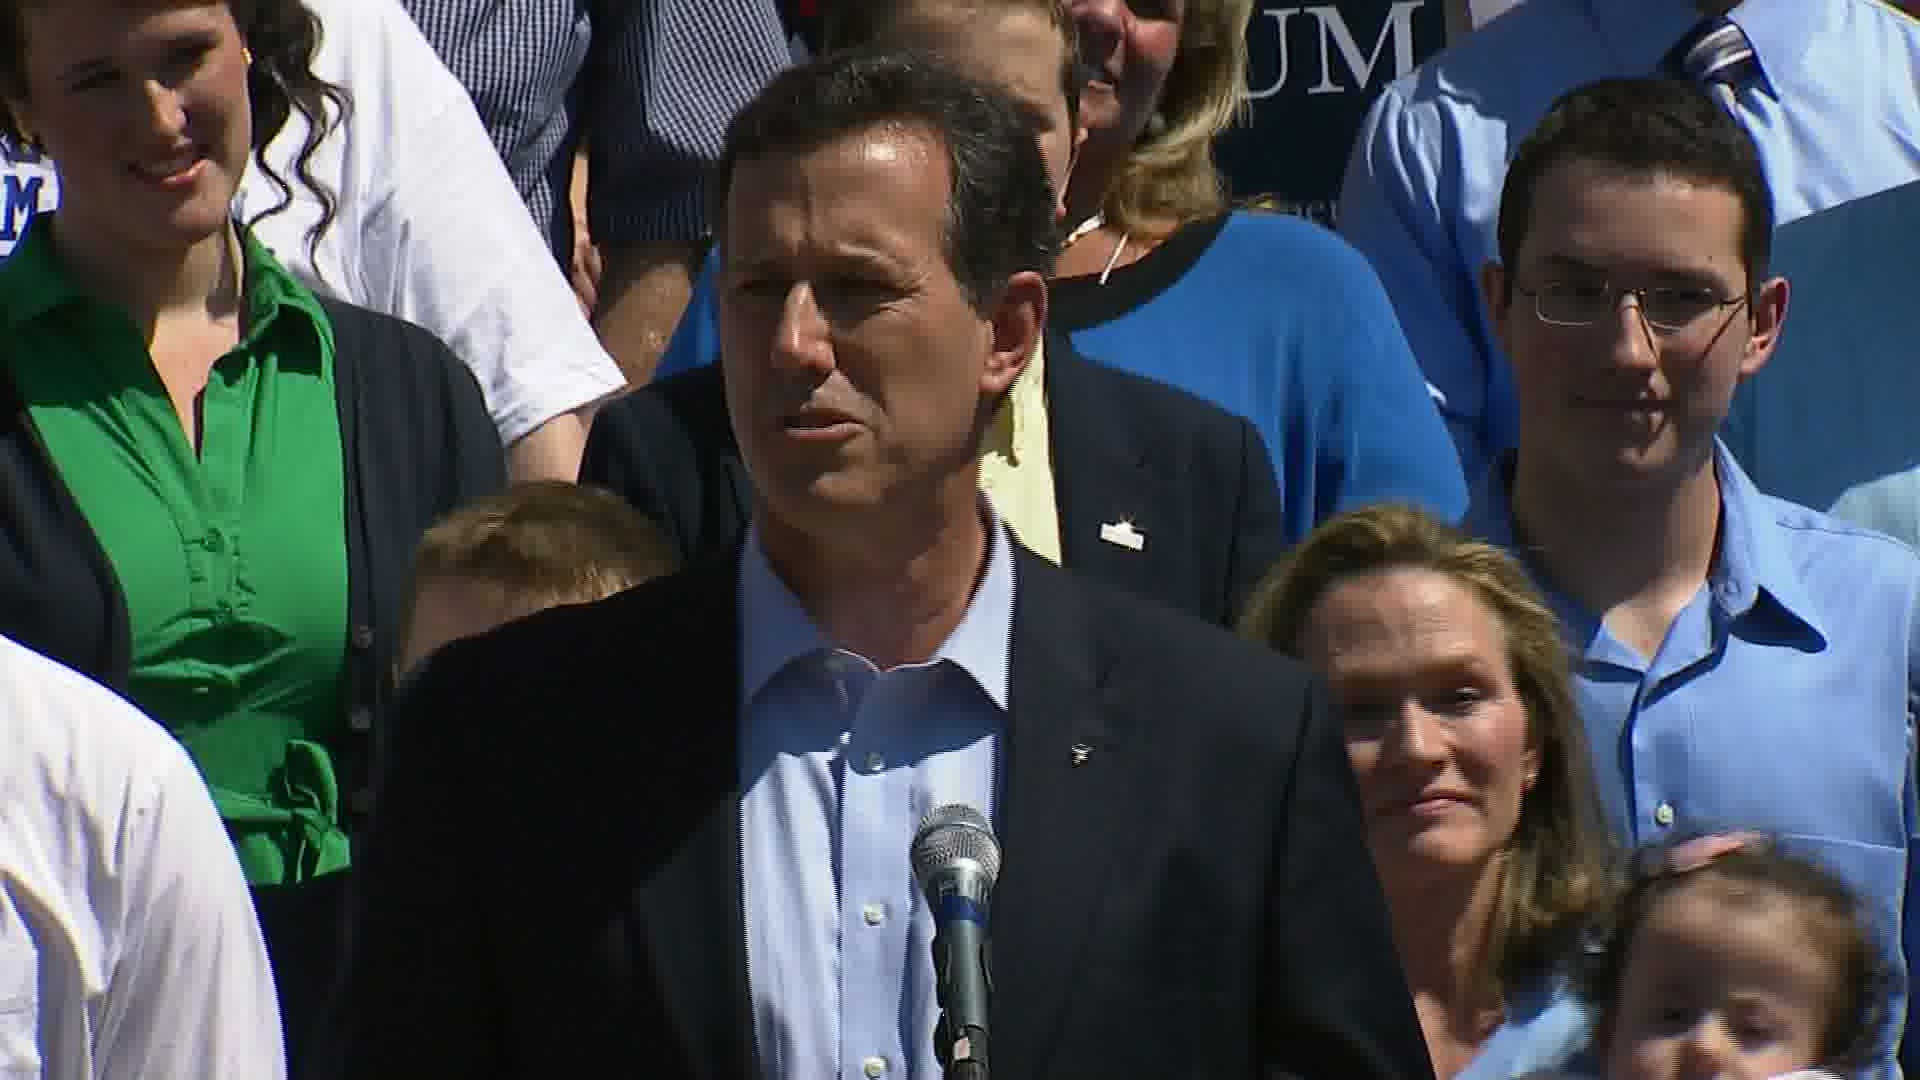 Santorum could siphon off religious conservative support from GOP field